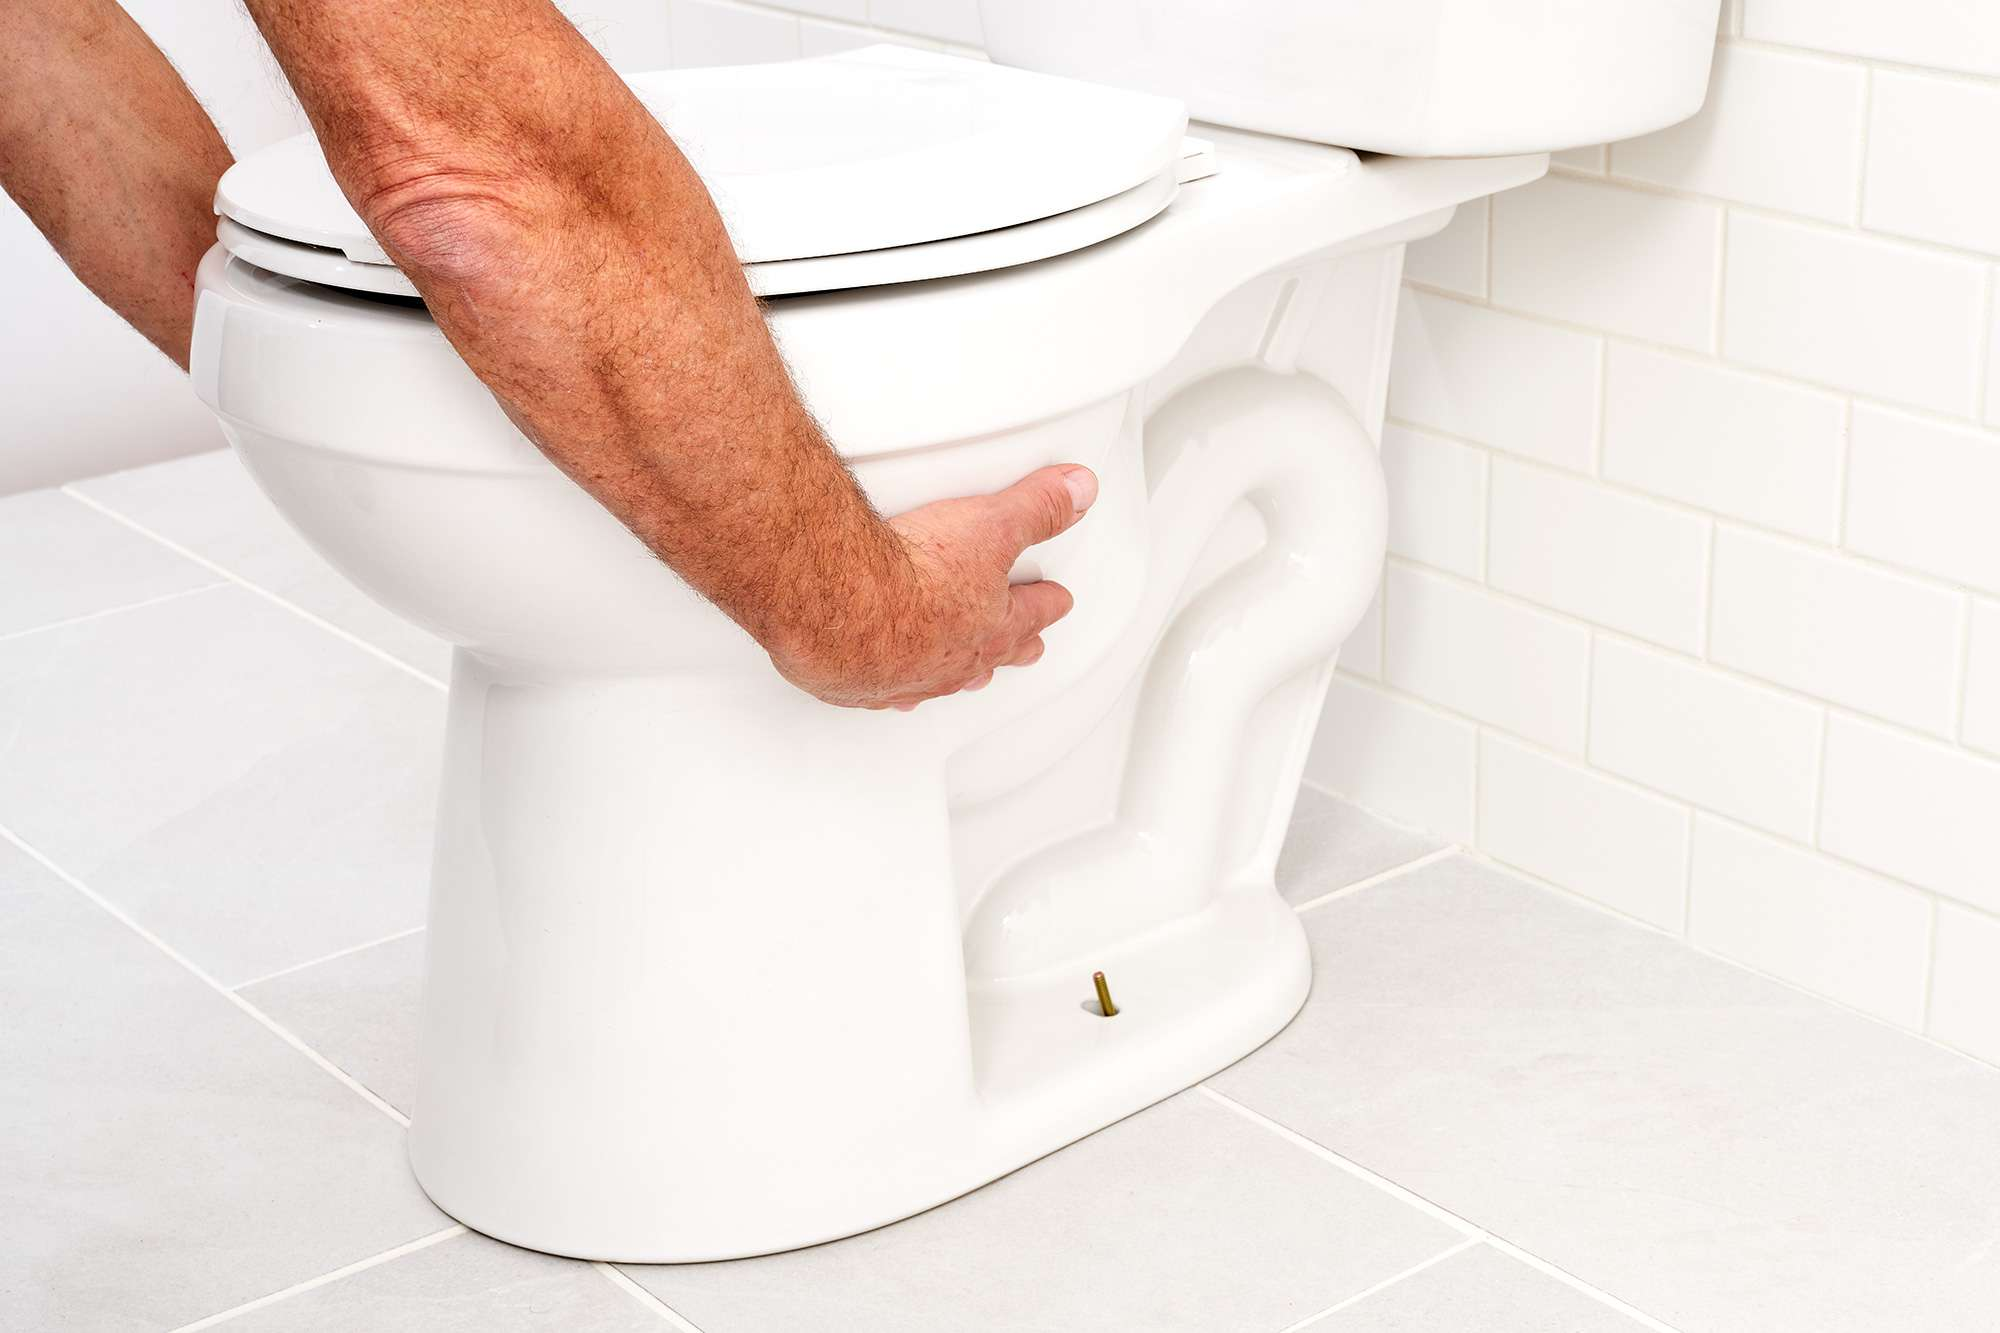 Toilet lifted by holding on to each side of bowl